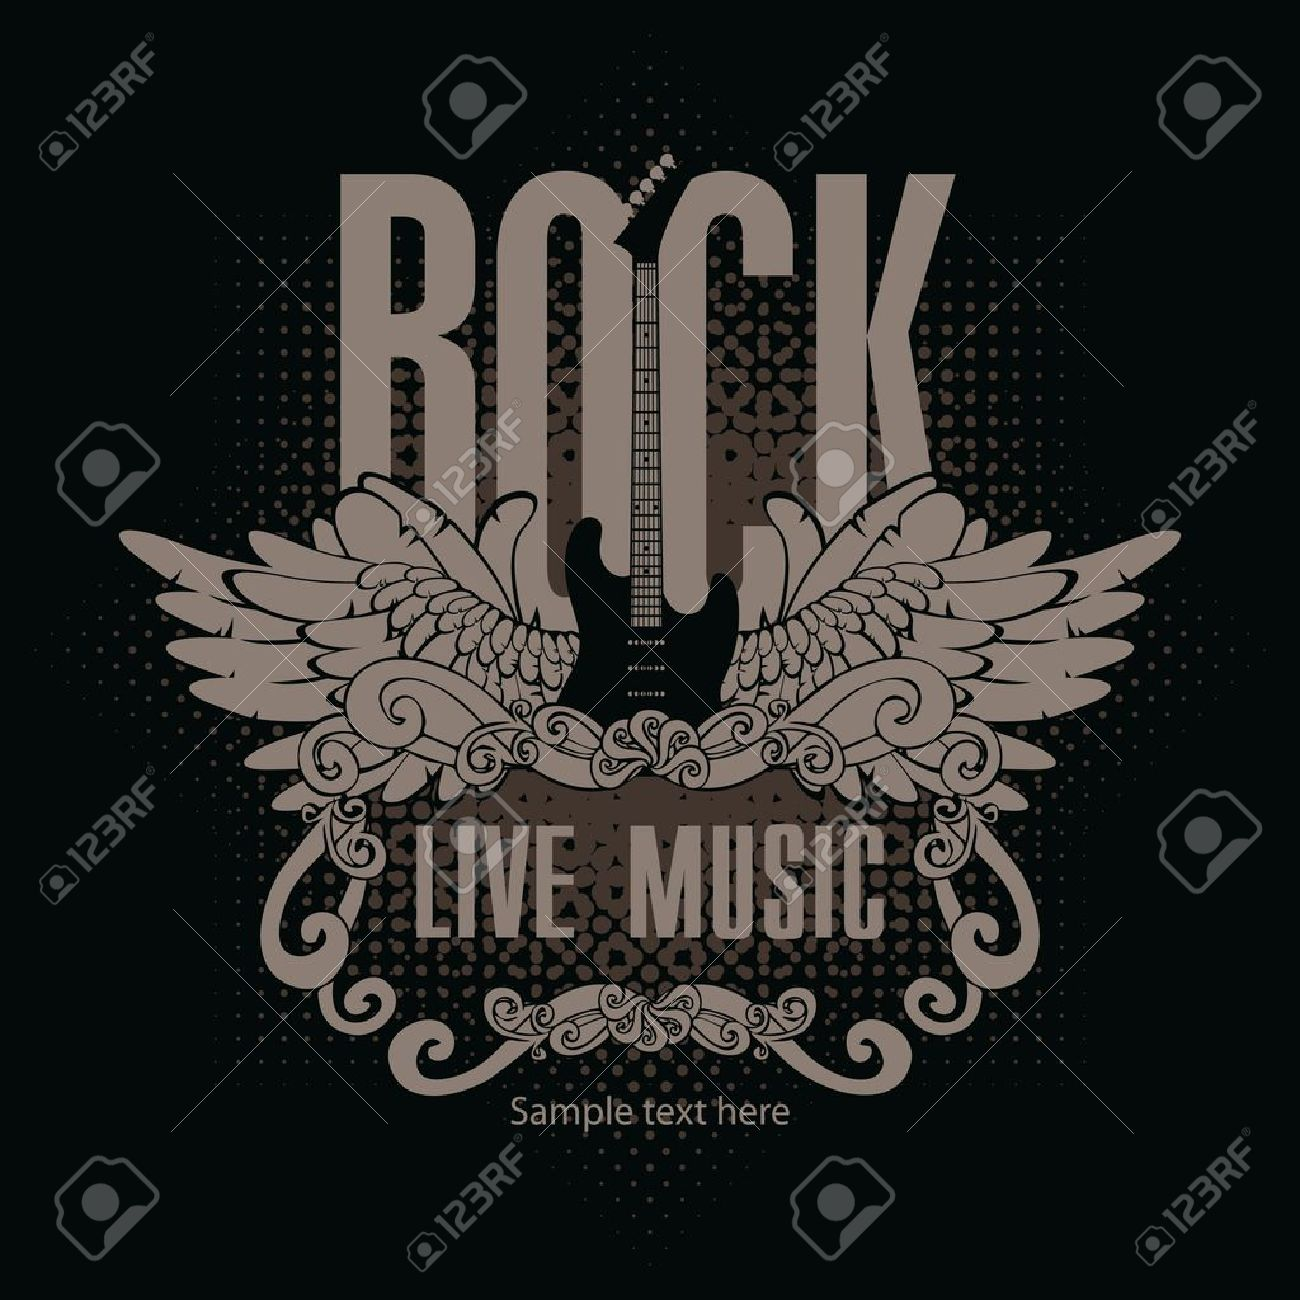 square banner with a guitar and wings and the words of rock music on a black background - 21823252